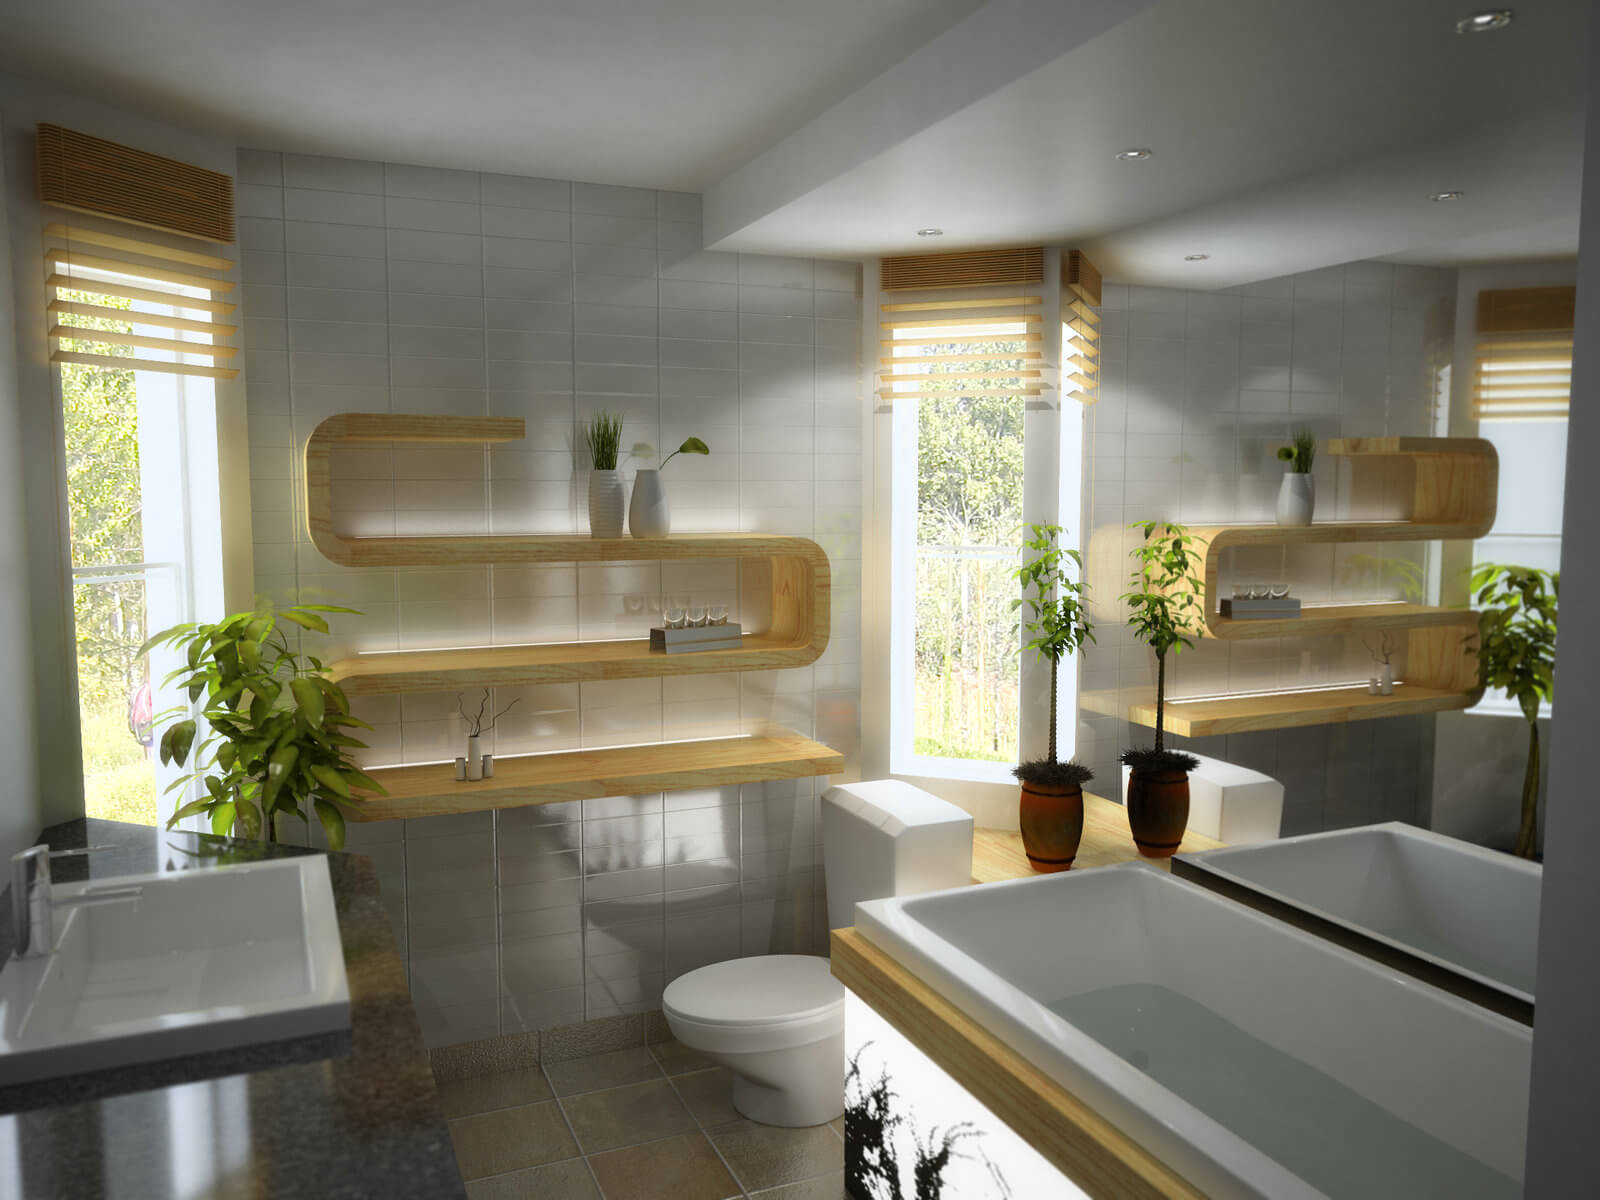 title | Interior design bathroom